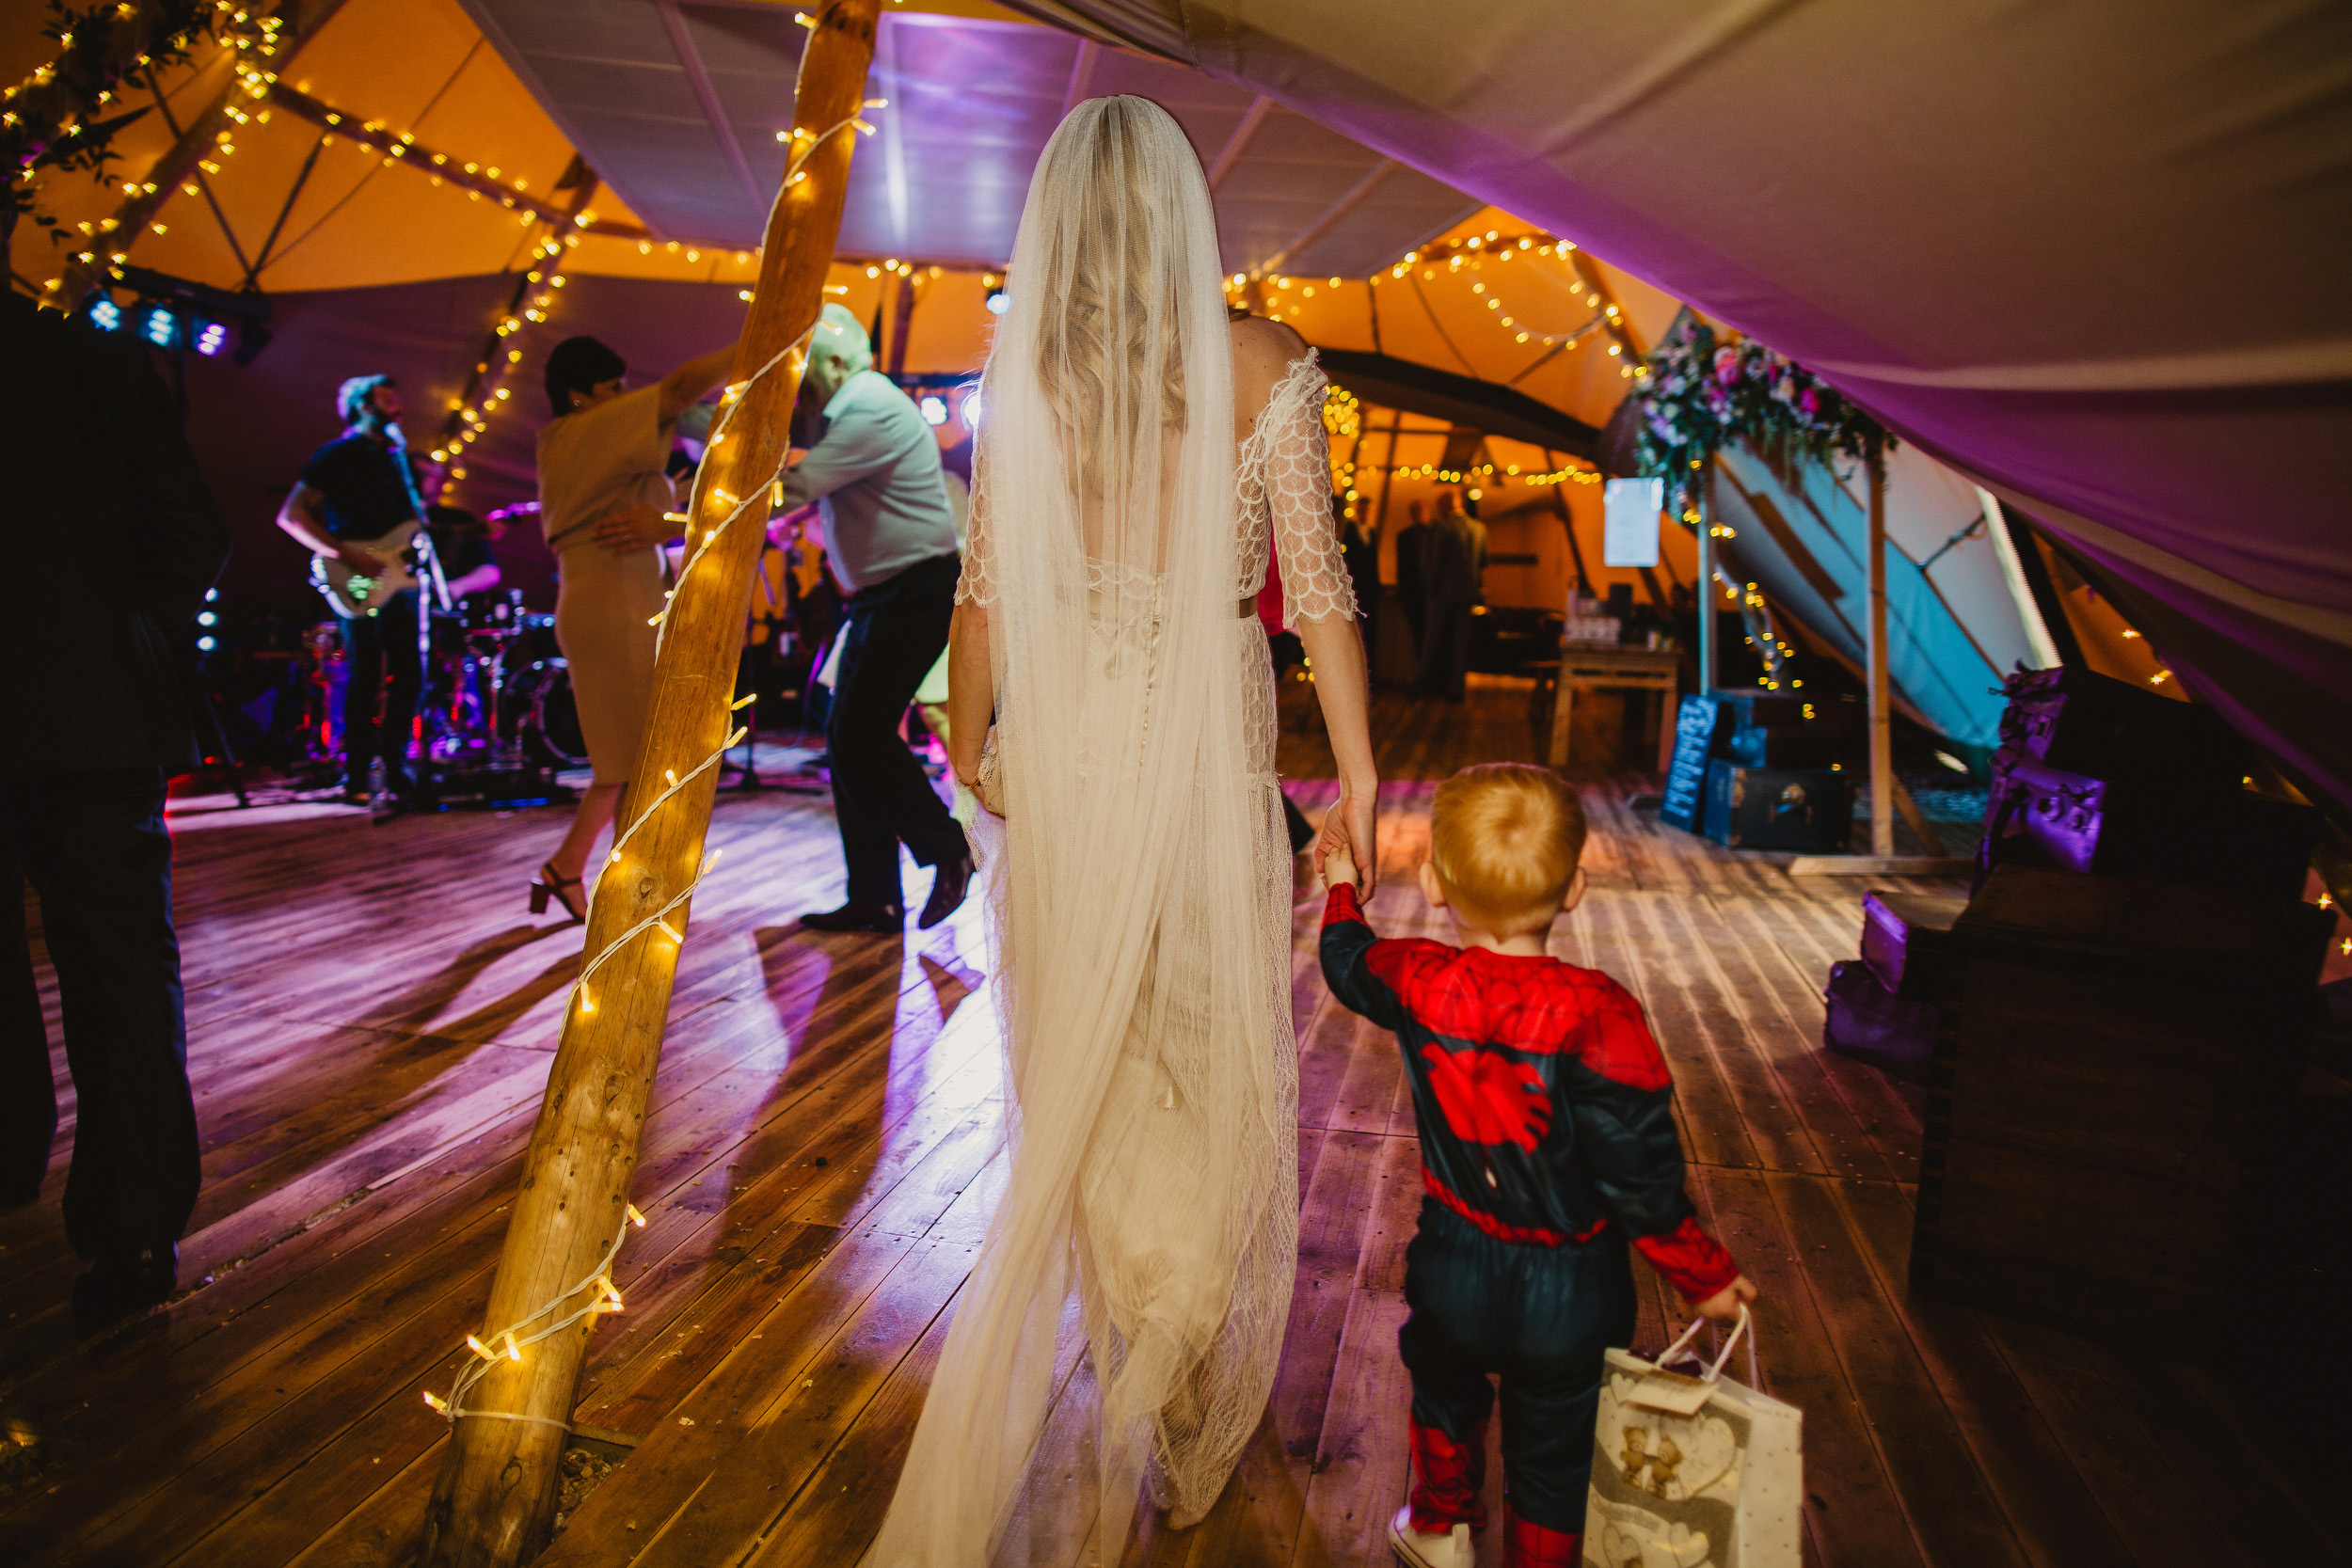 Gemma-Bohemian-Outdoor-Tipi-Wedding-Laid-Back-Relaxed-Family-Wedding-Kate-Beaumont-Astilbe-by-S6-Photography-Sheffield-60.jpg